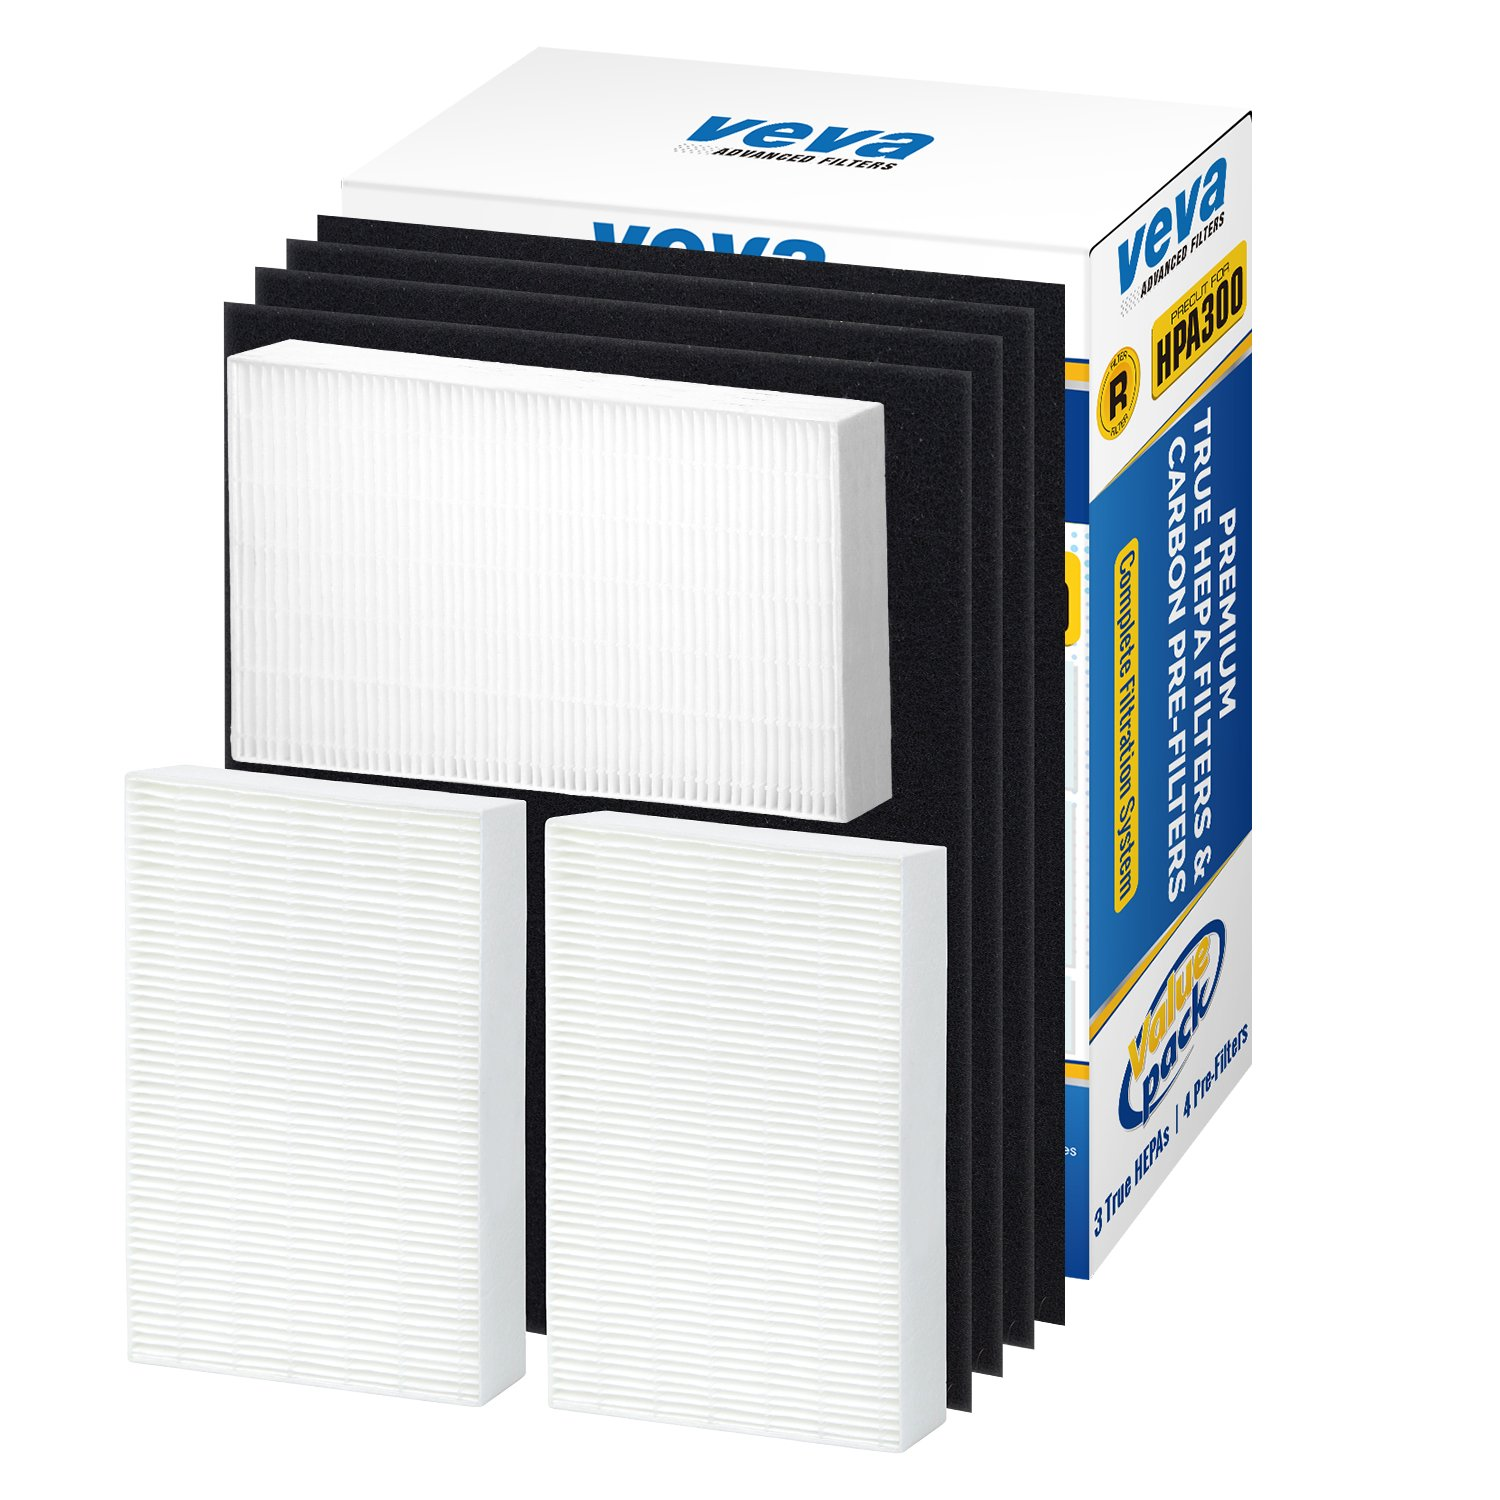 VEVA Complete Premium True HEPA Replacement Filter 3 Pack Including 4 Precut Activated Carbon Pre-Filters for HPA300 compatible with HW Air Purifier 300 and Filter R by Advanced Filters by VEVA